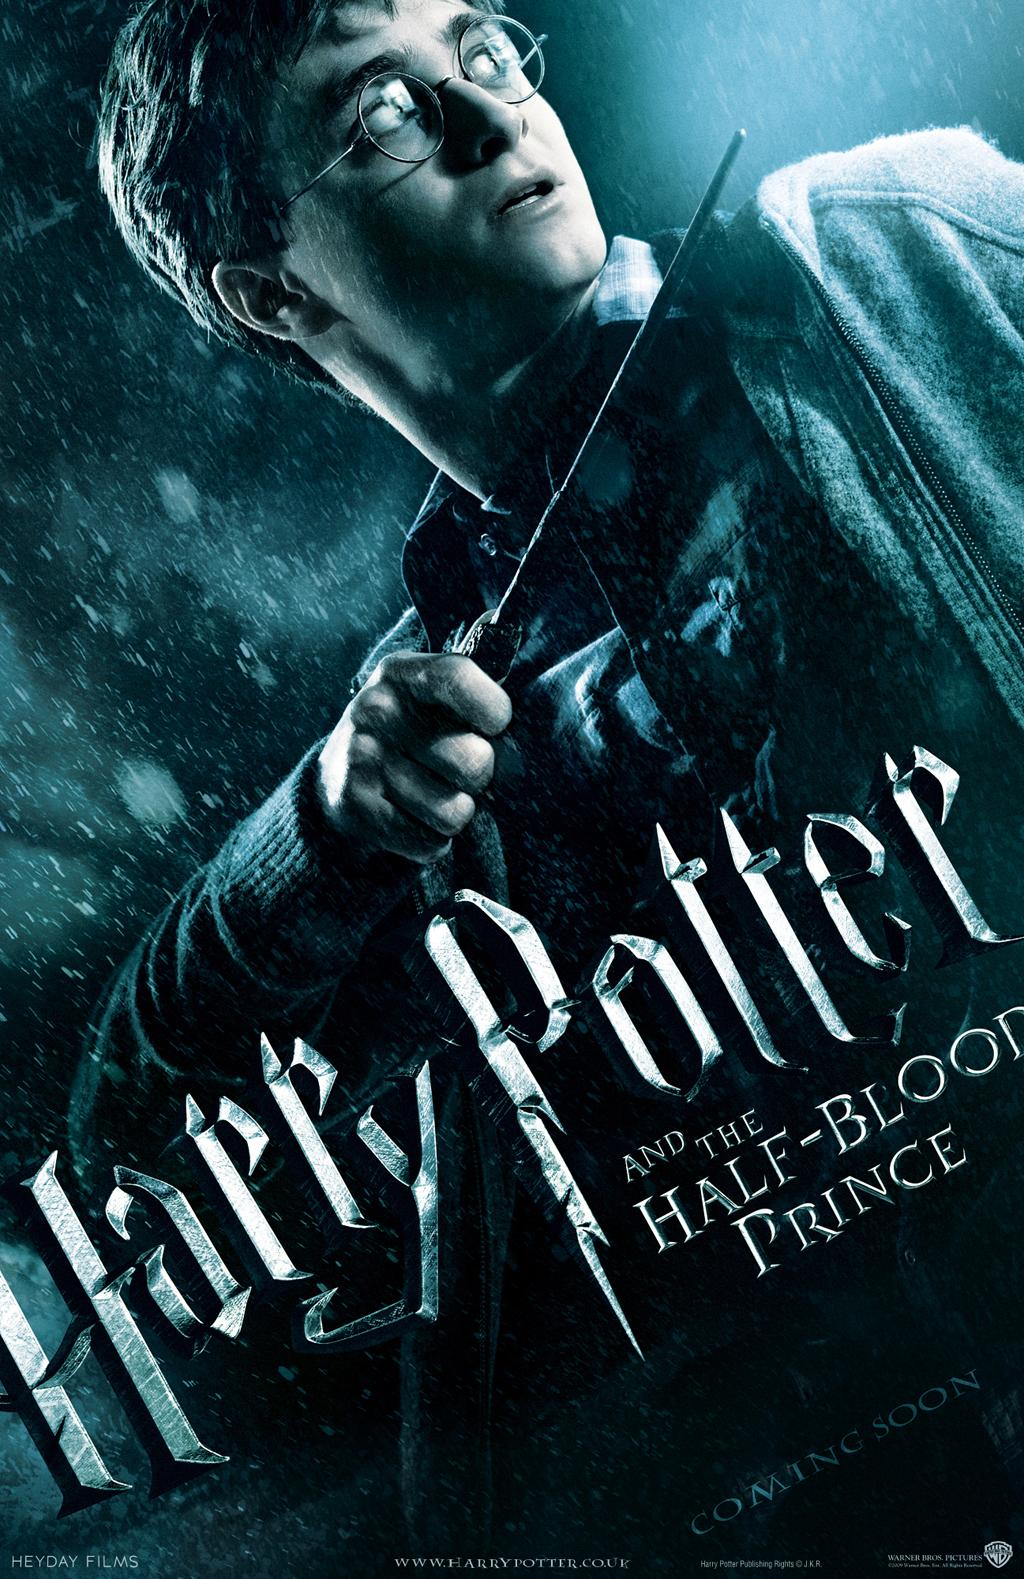 Hbp_promo_officialposter_01